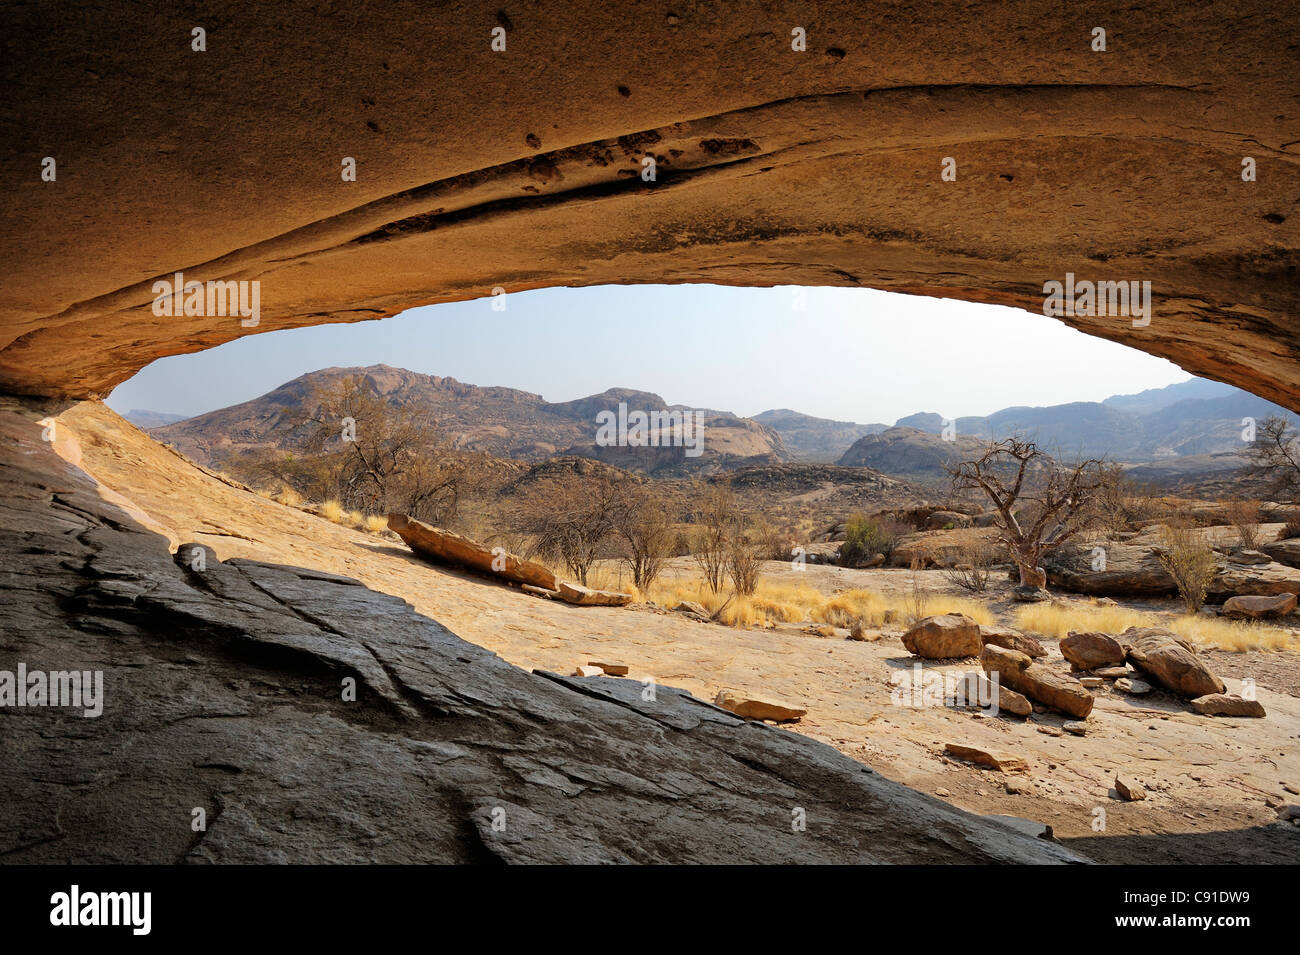 Rock shelter Phillipp´s Cave with view over savannah, Ameib, Erongo mountains, Namibia - Stock Image